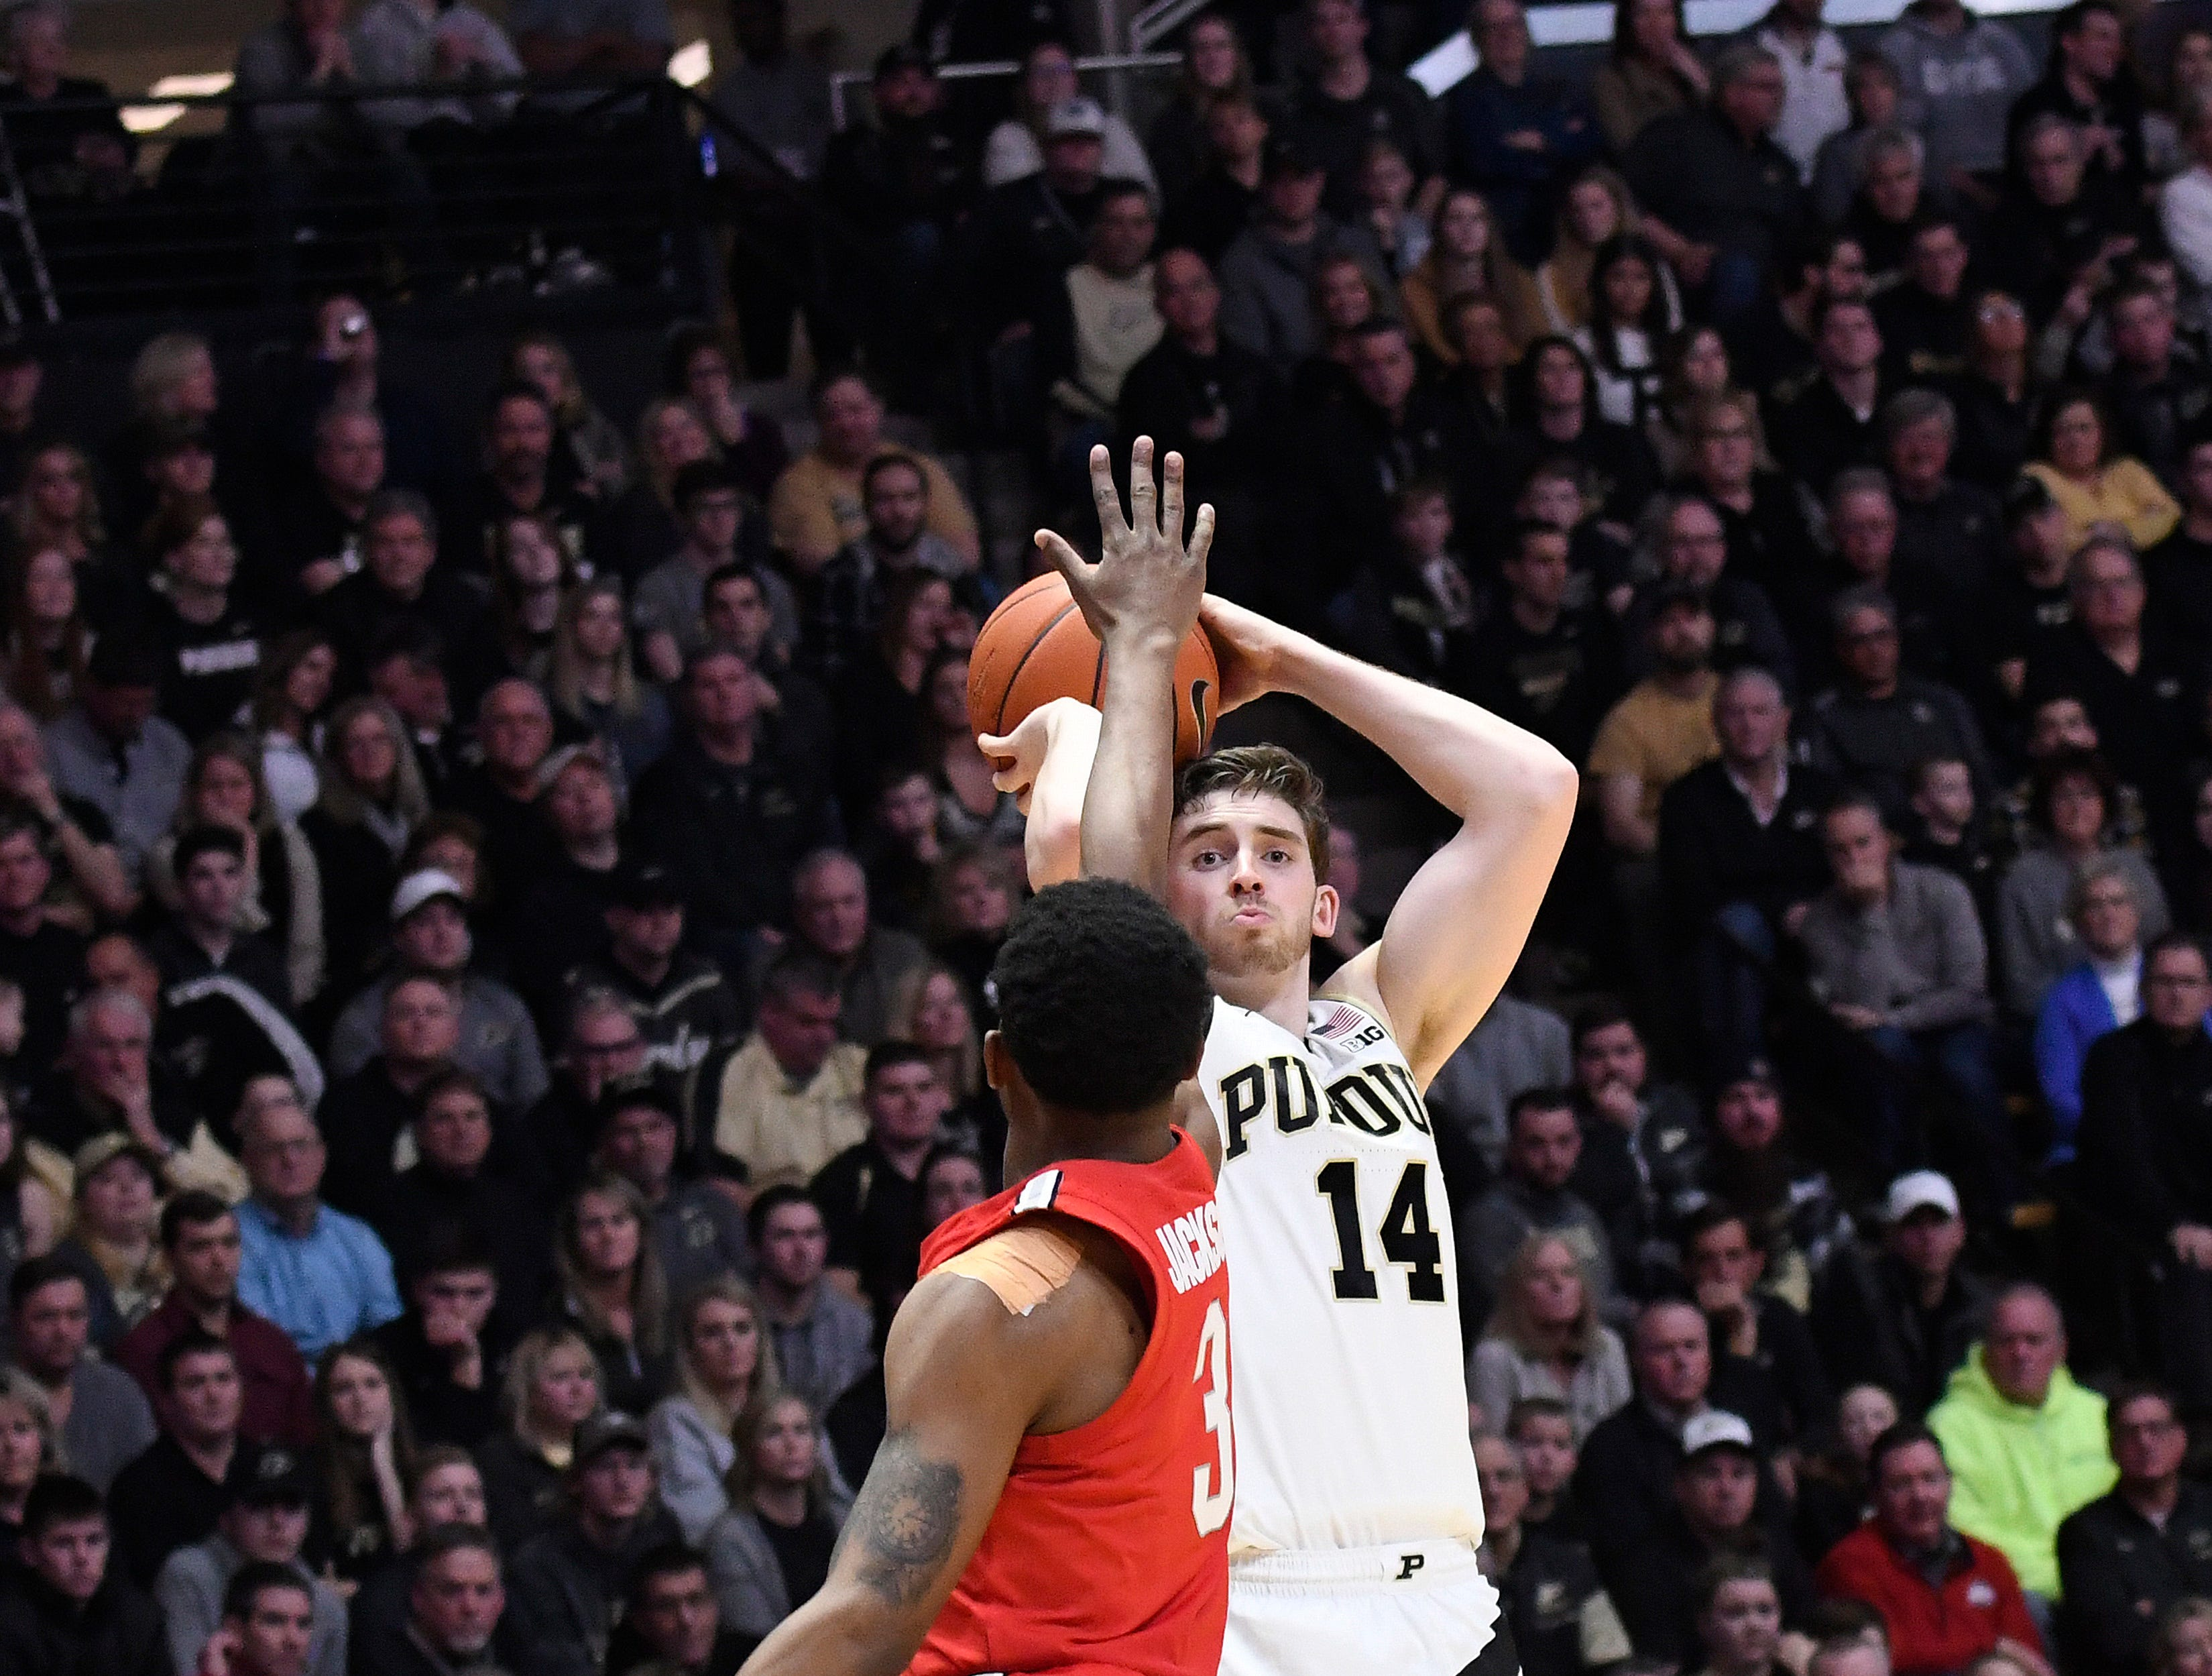 Mar 2, 2019; West Lafayette, IN, USA; Purdue Boilermakers guard Ryan Cline (14) readies to release a shot over an Ohio State Buckeye defender in the 2nd half at Mackey Arena. Mandatory Credit: Sandra Dukes-USA TODAY Sports